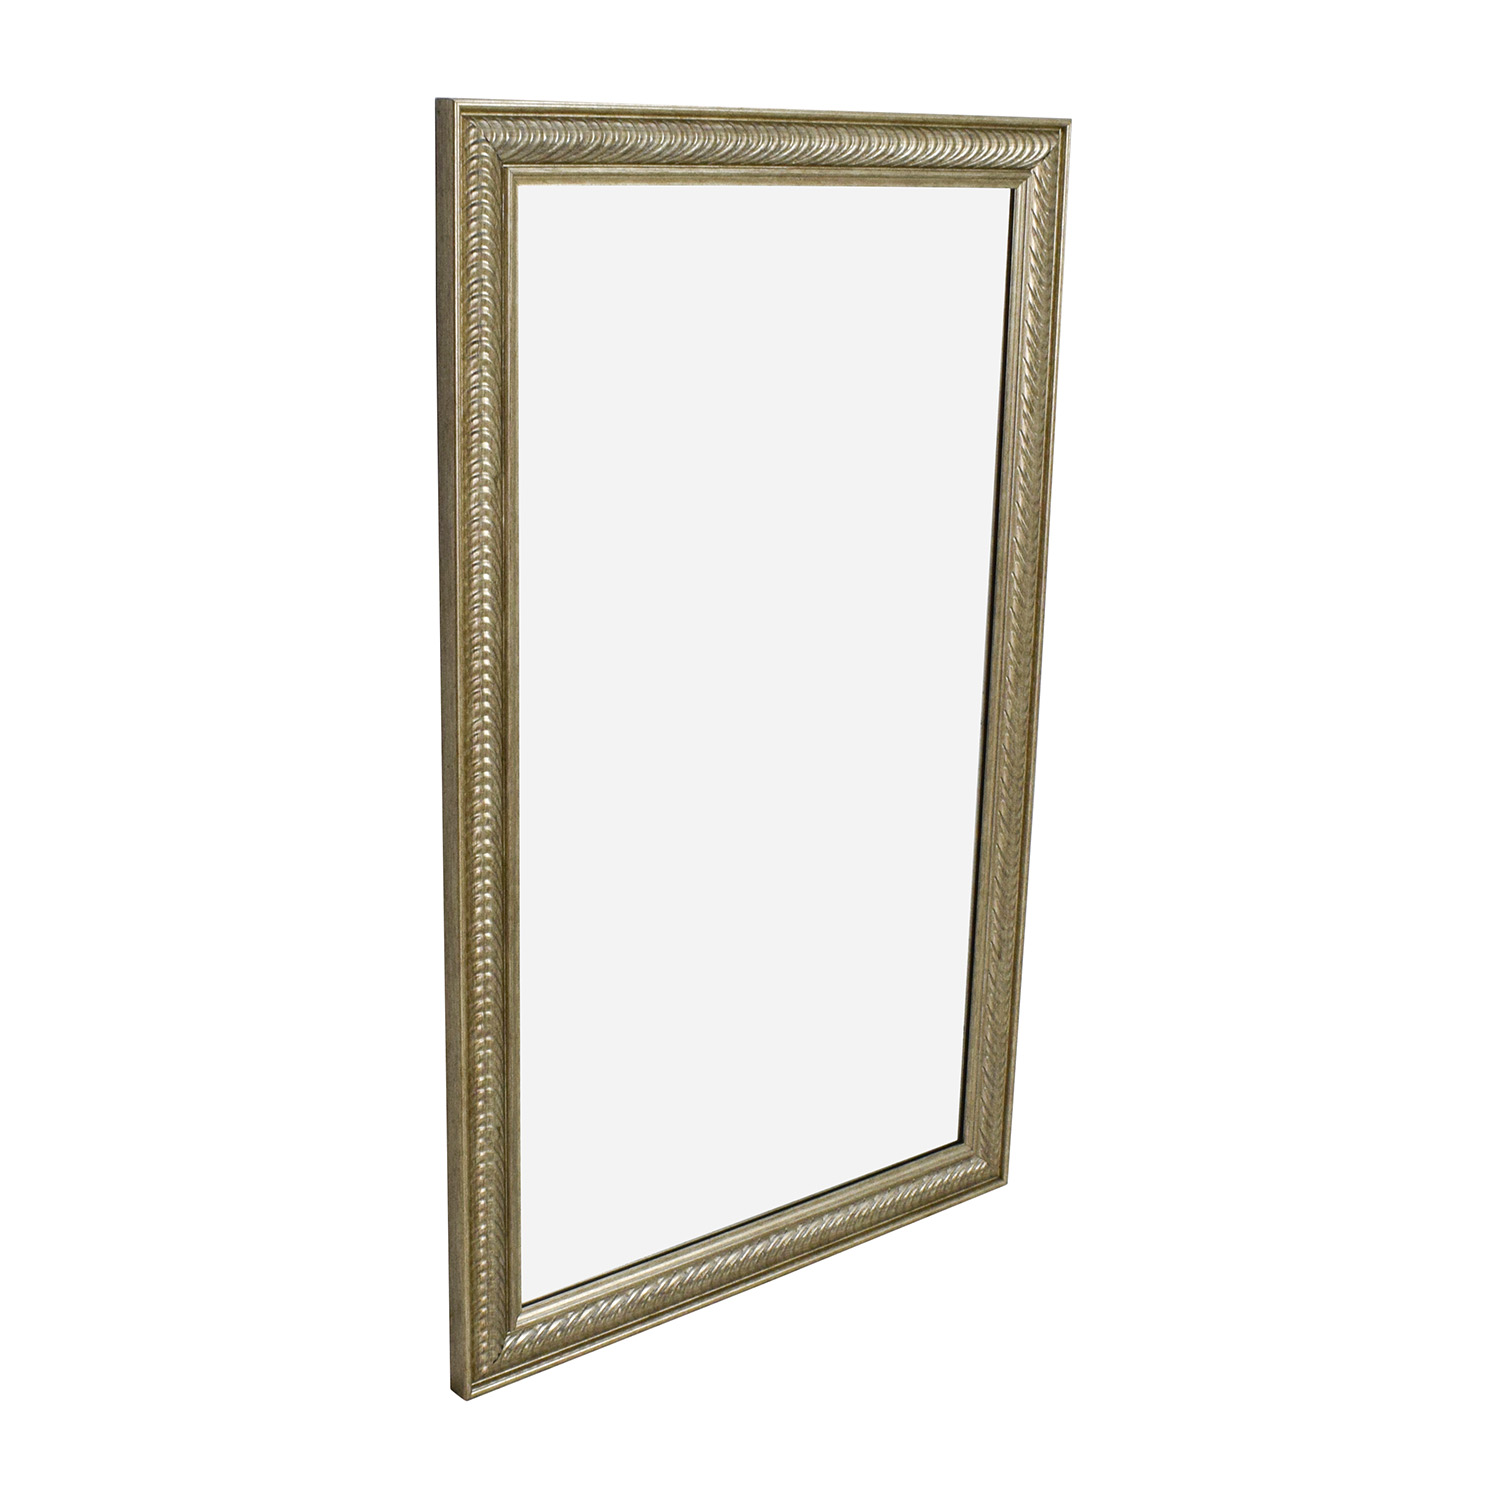 44 off wave collection wave collection silver framed for Silver framed mirror